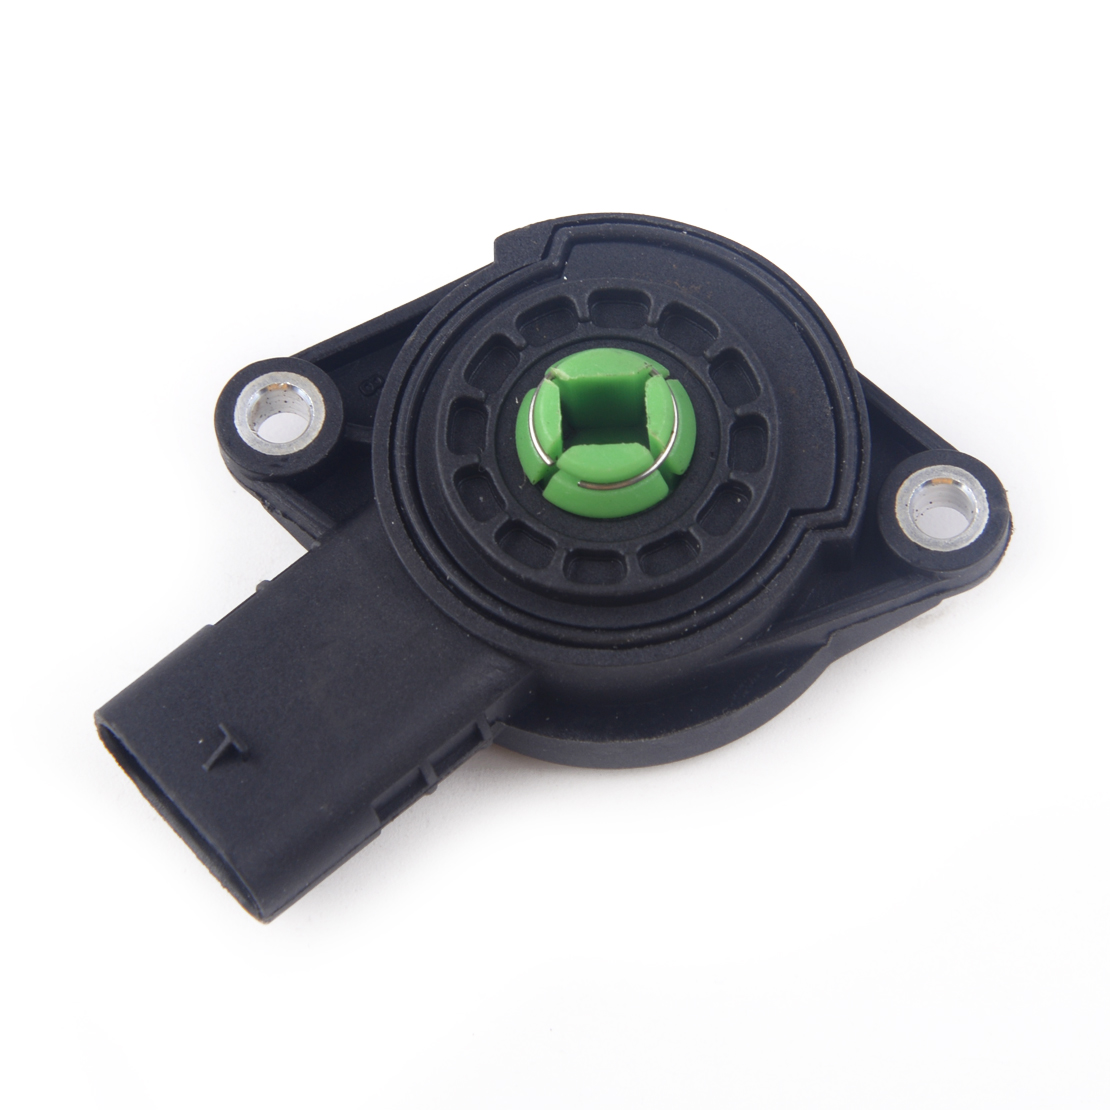 US $11 99 28% OFF|DWCX Air Engine Intake Manifold Runner Control Sensor  Solenoid Valve 07L907386A accessories Fit for VW Jetta Passat AUDI A4 A6-in